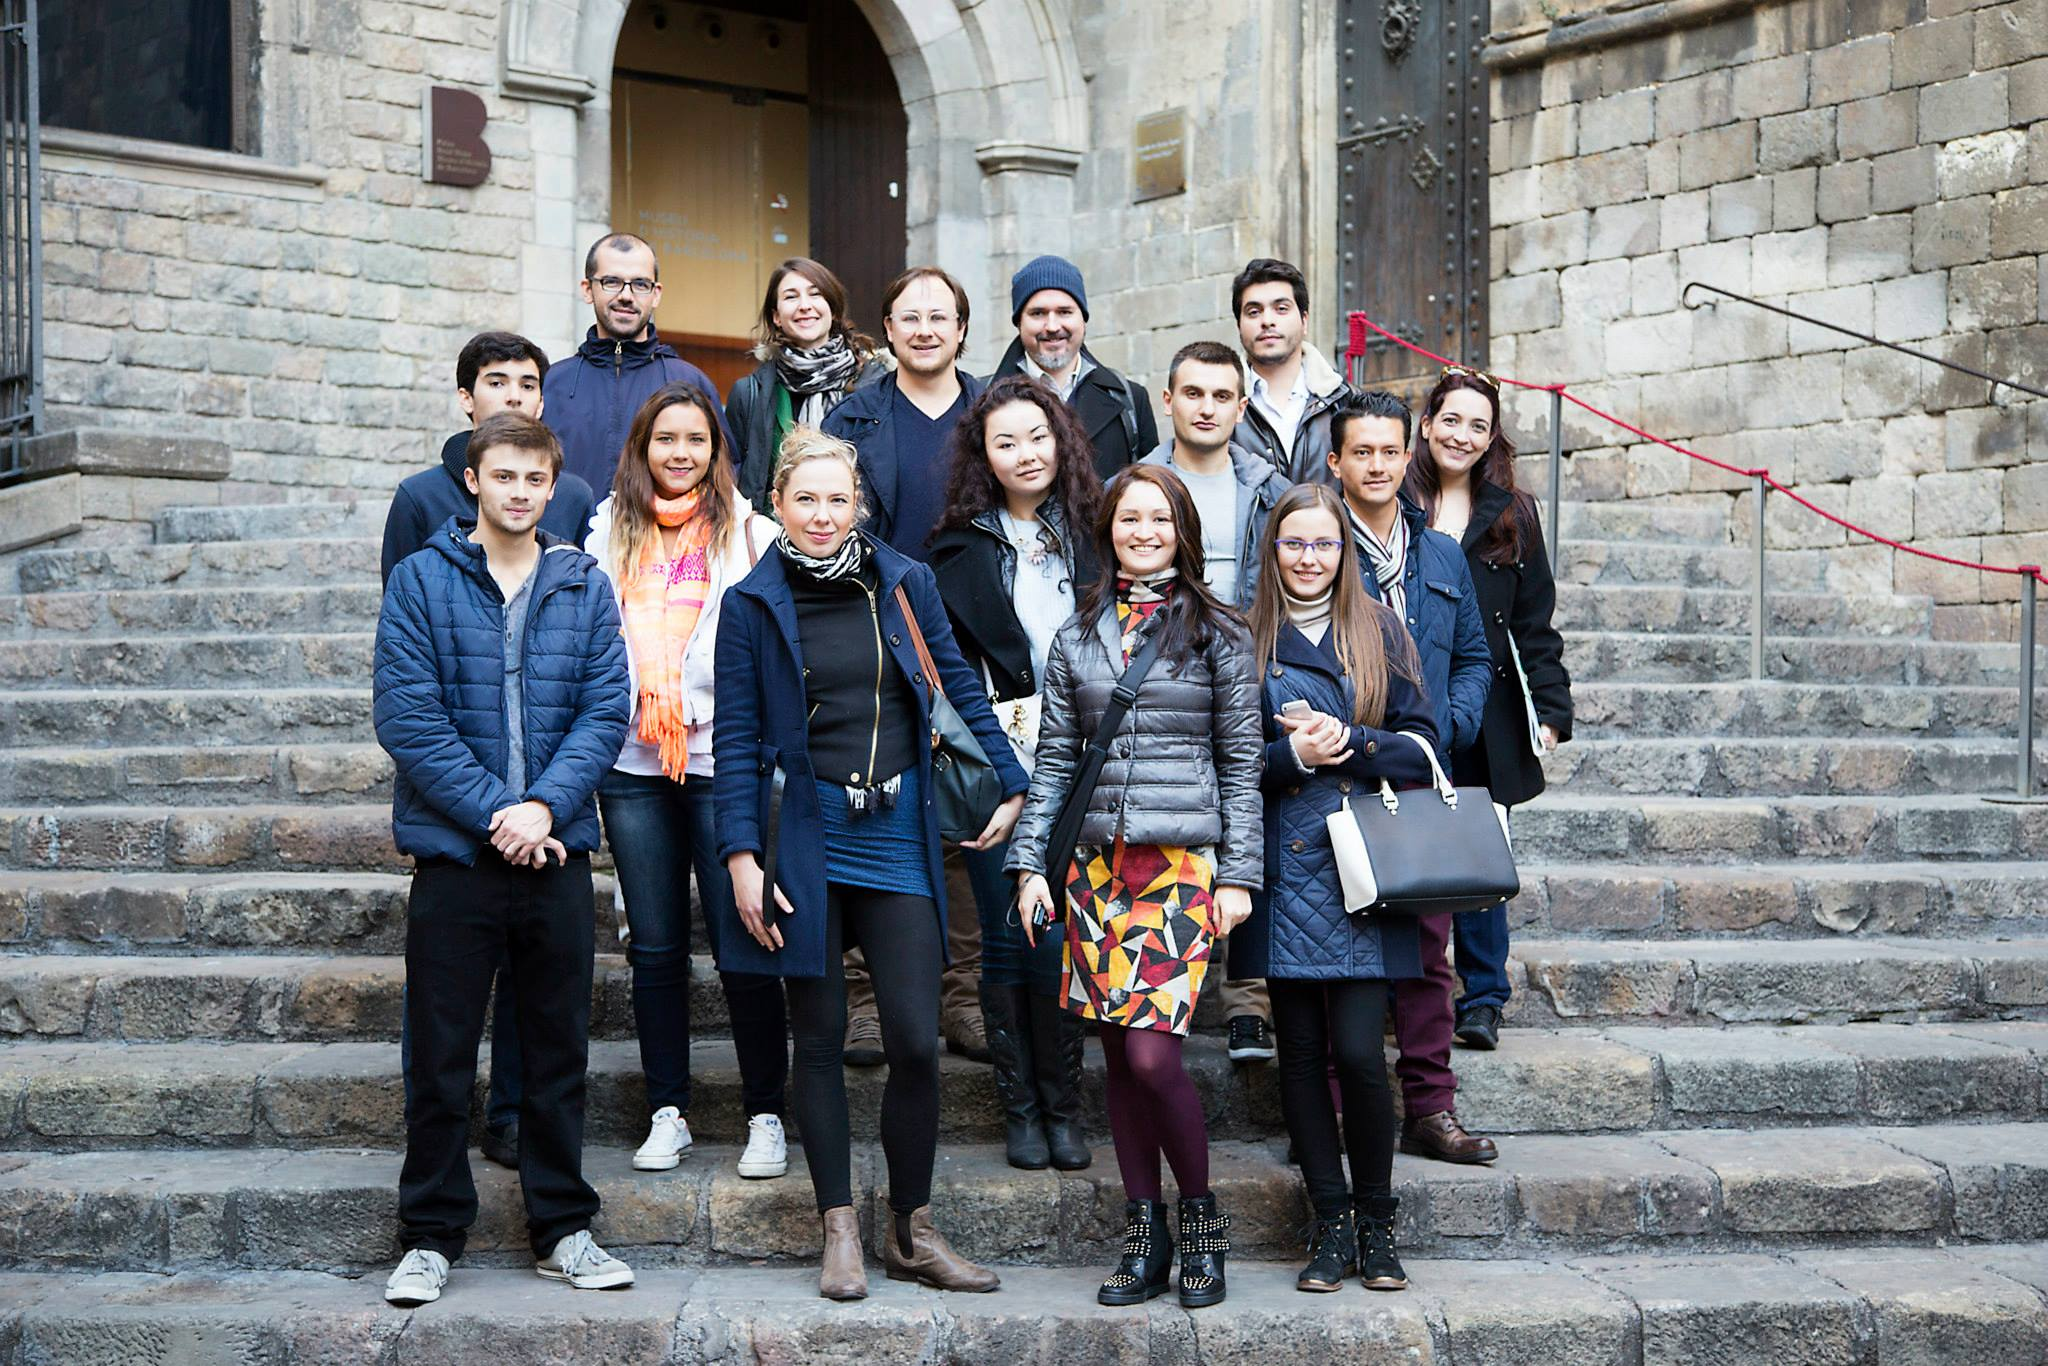 New MBA Students Tour One of Barcelona's Coolest Neighborhoods